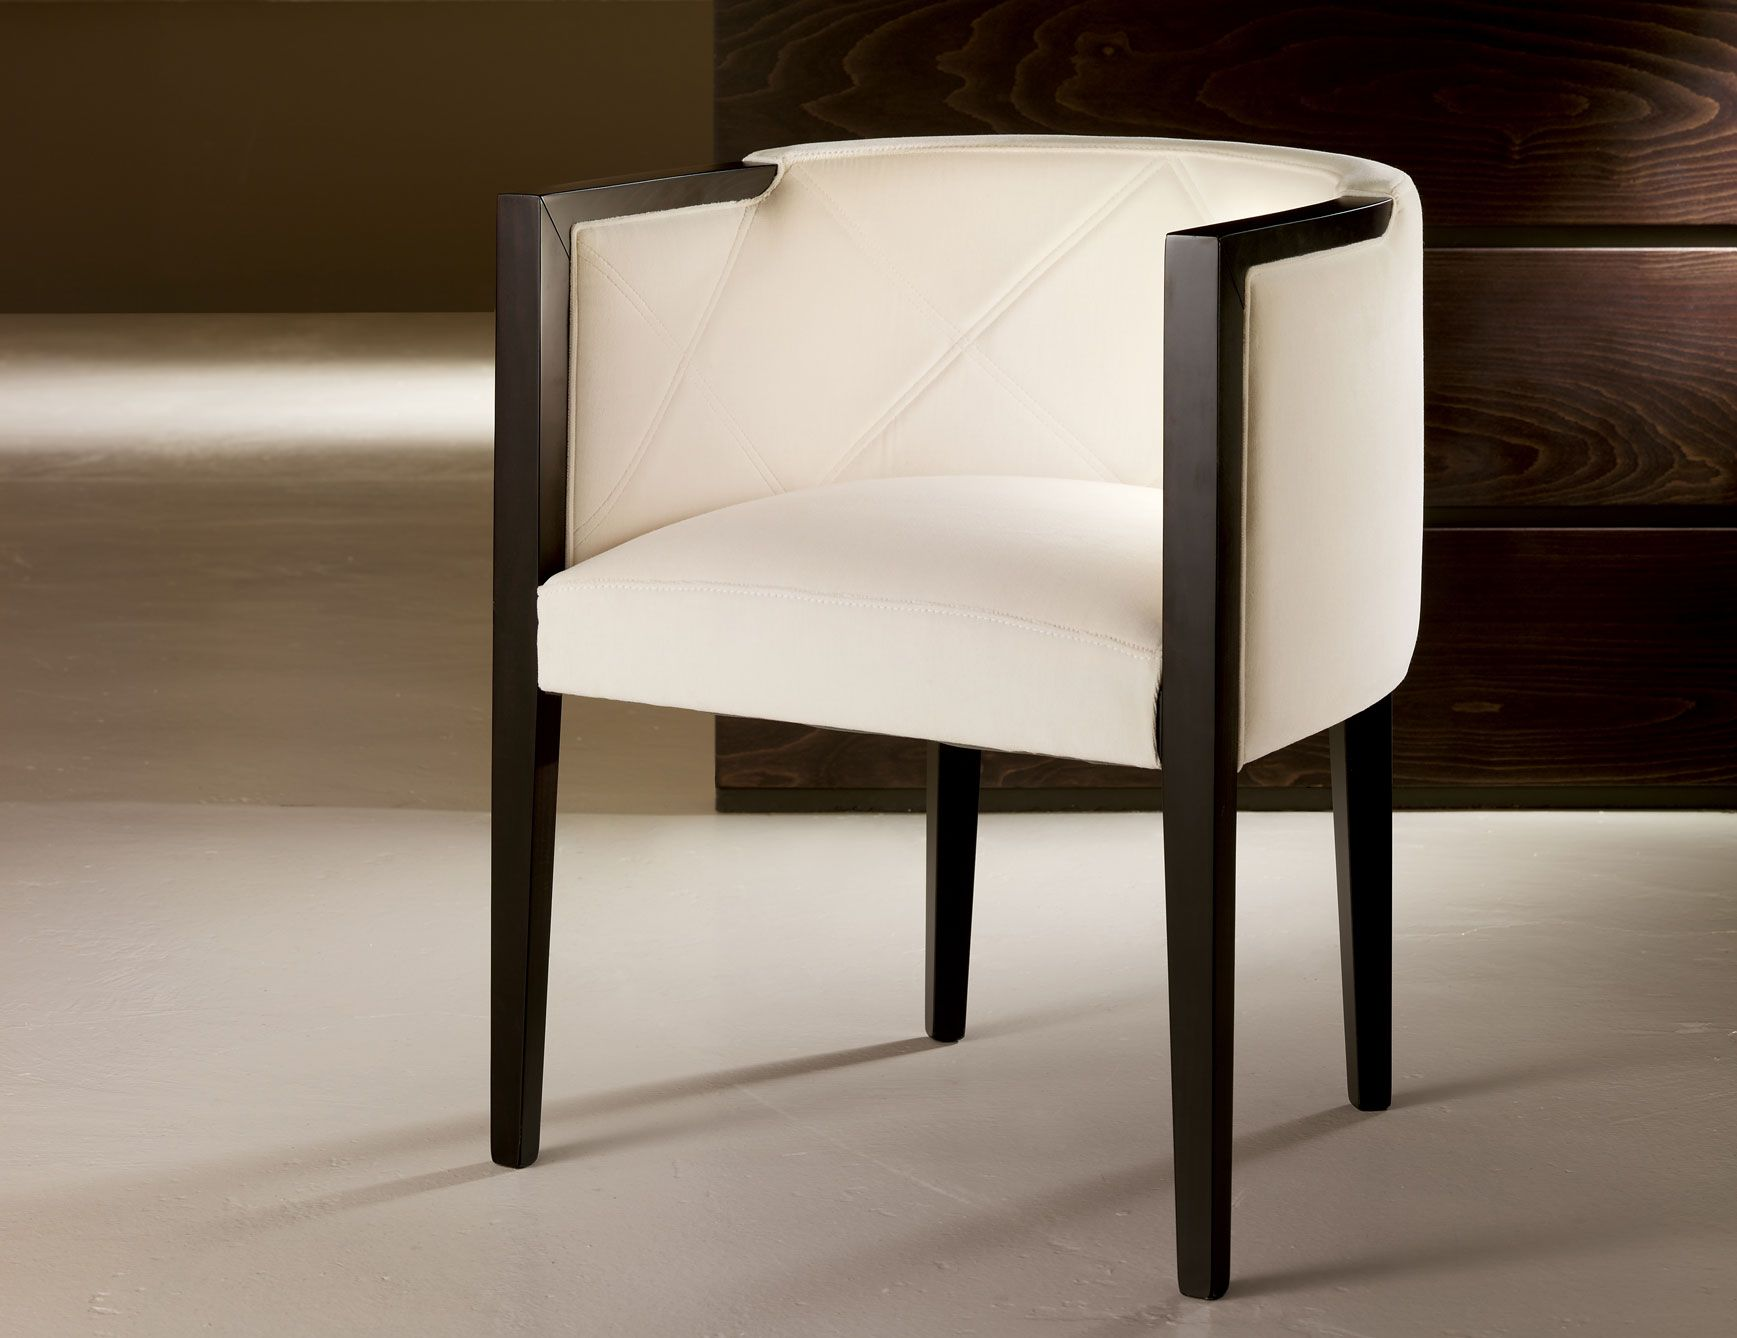 Costantini Sedie ~ Structure in solid shaped and lacquered polish wood ral colours